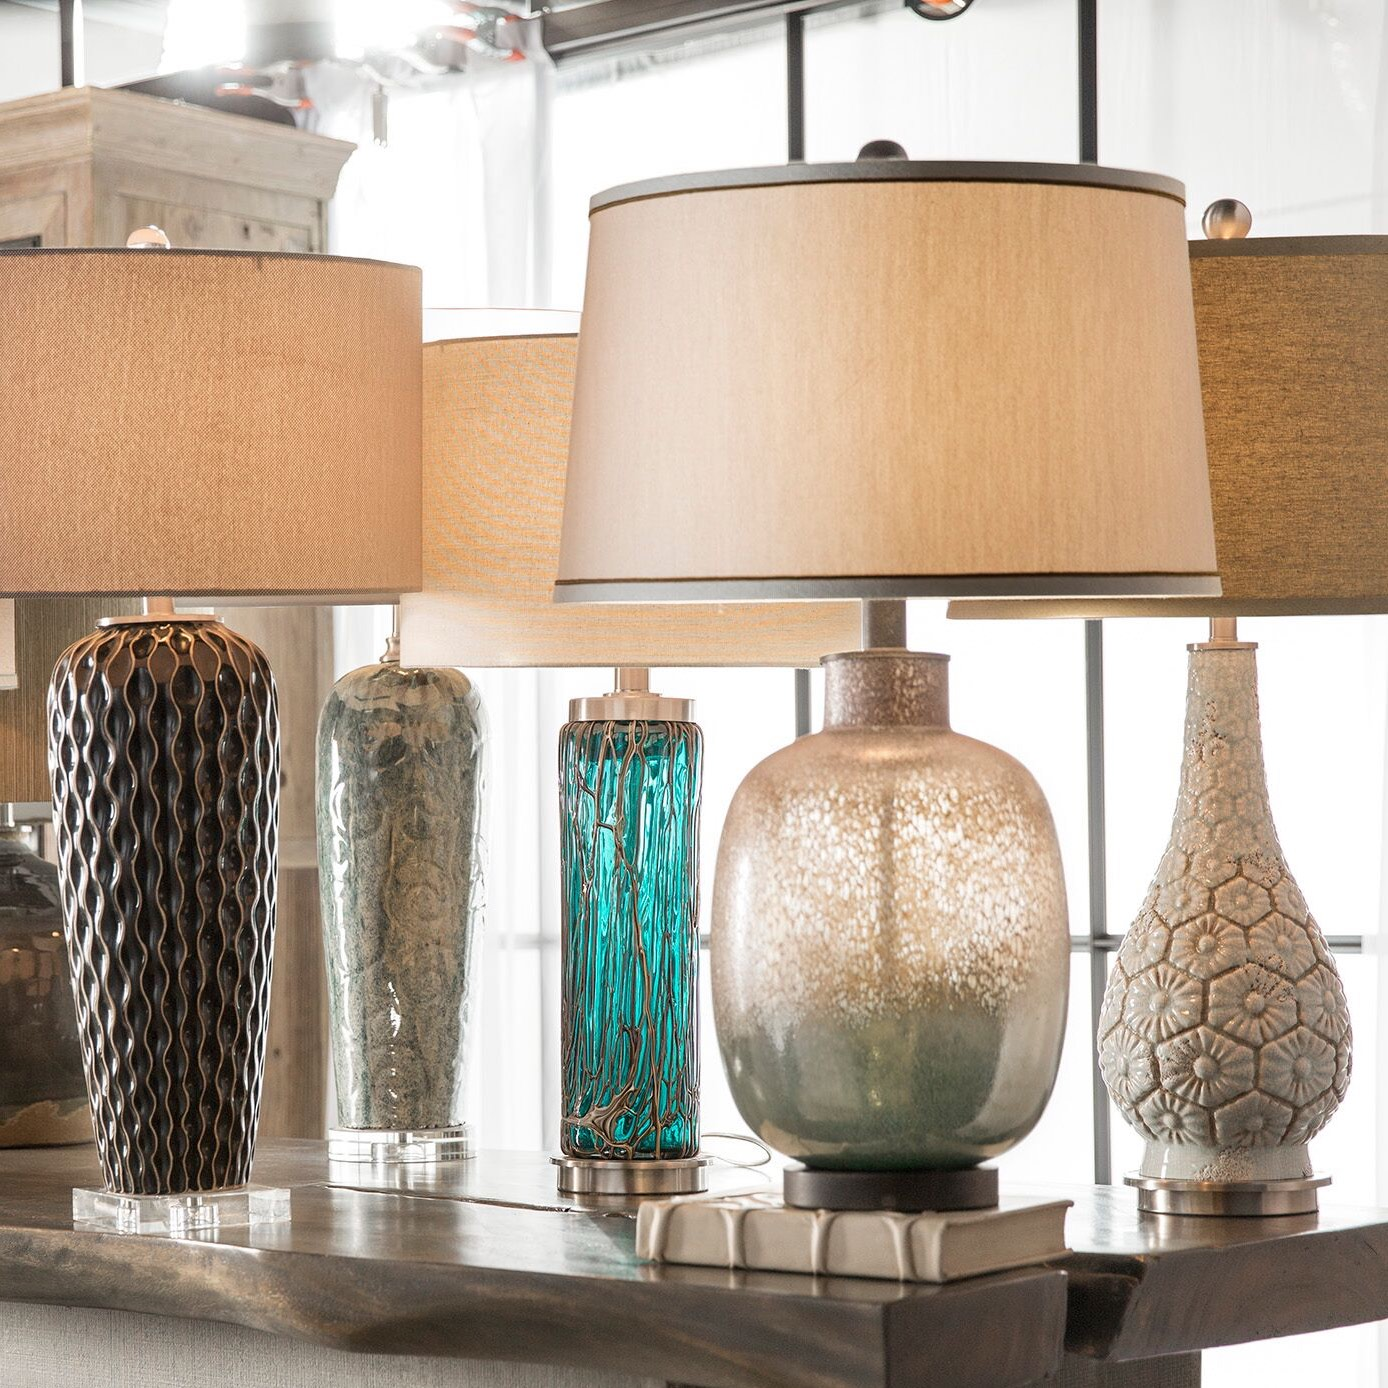 uttermost アッターモスト lamps collection